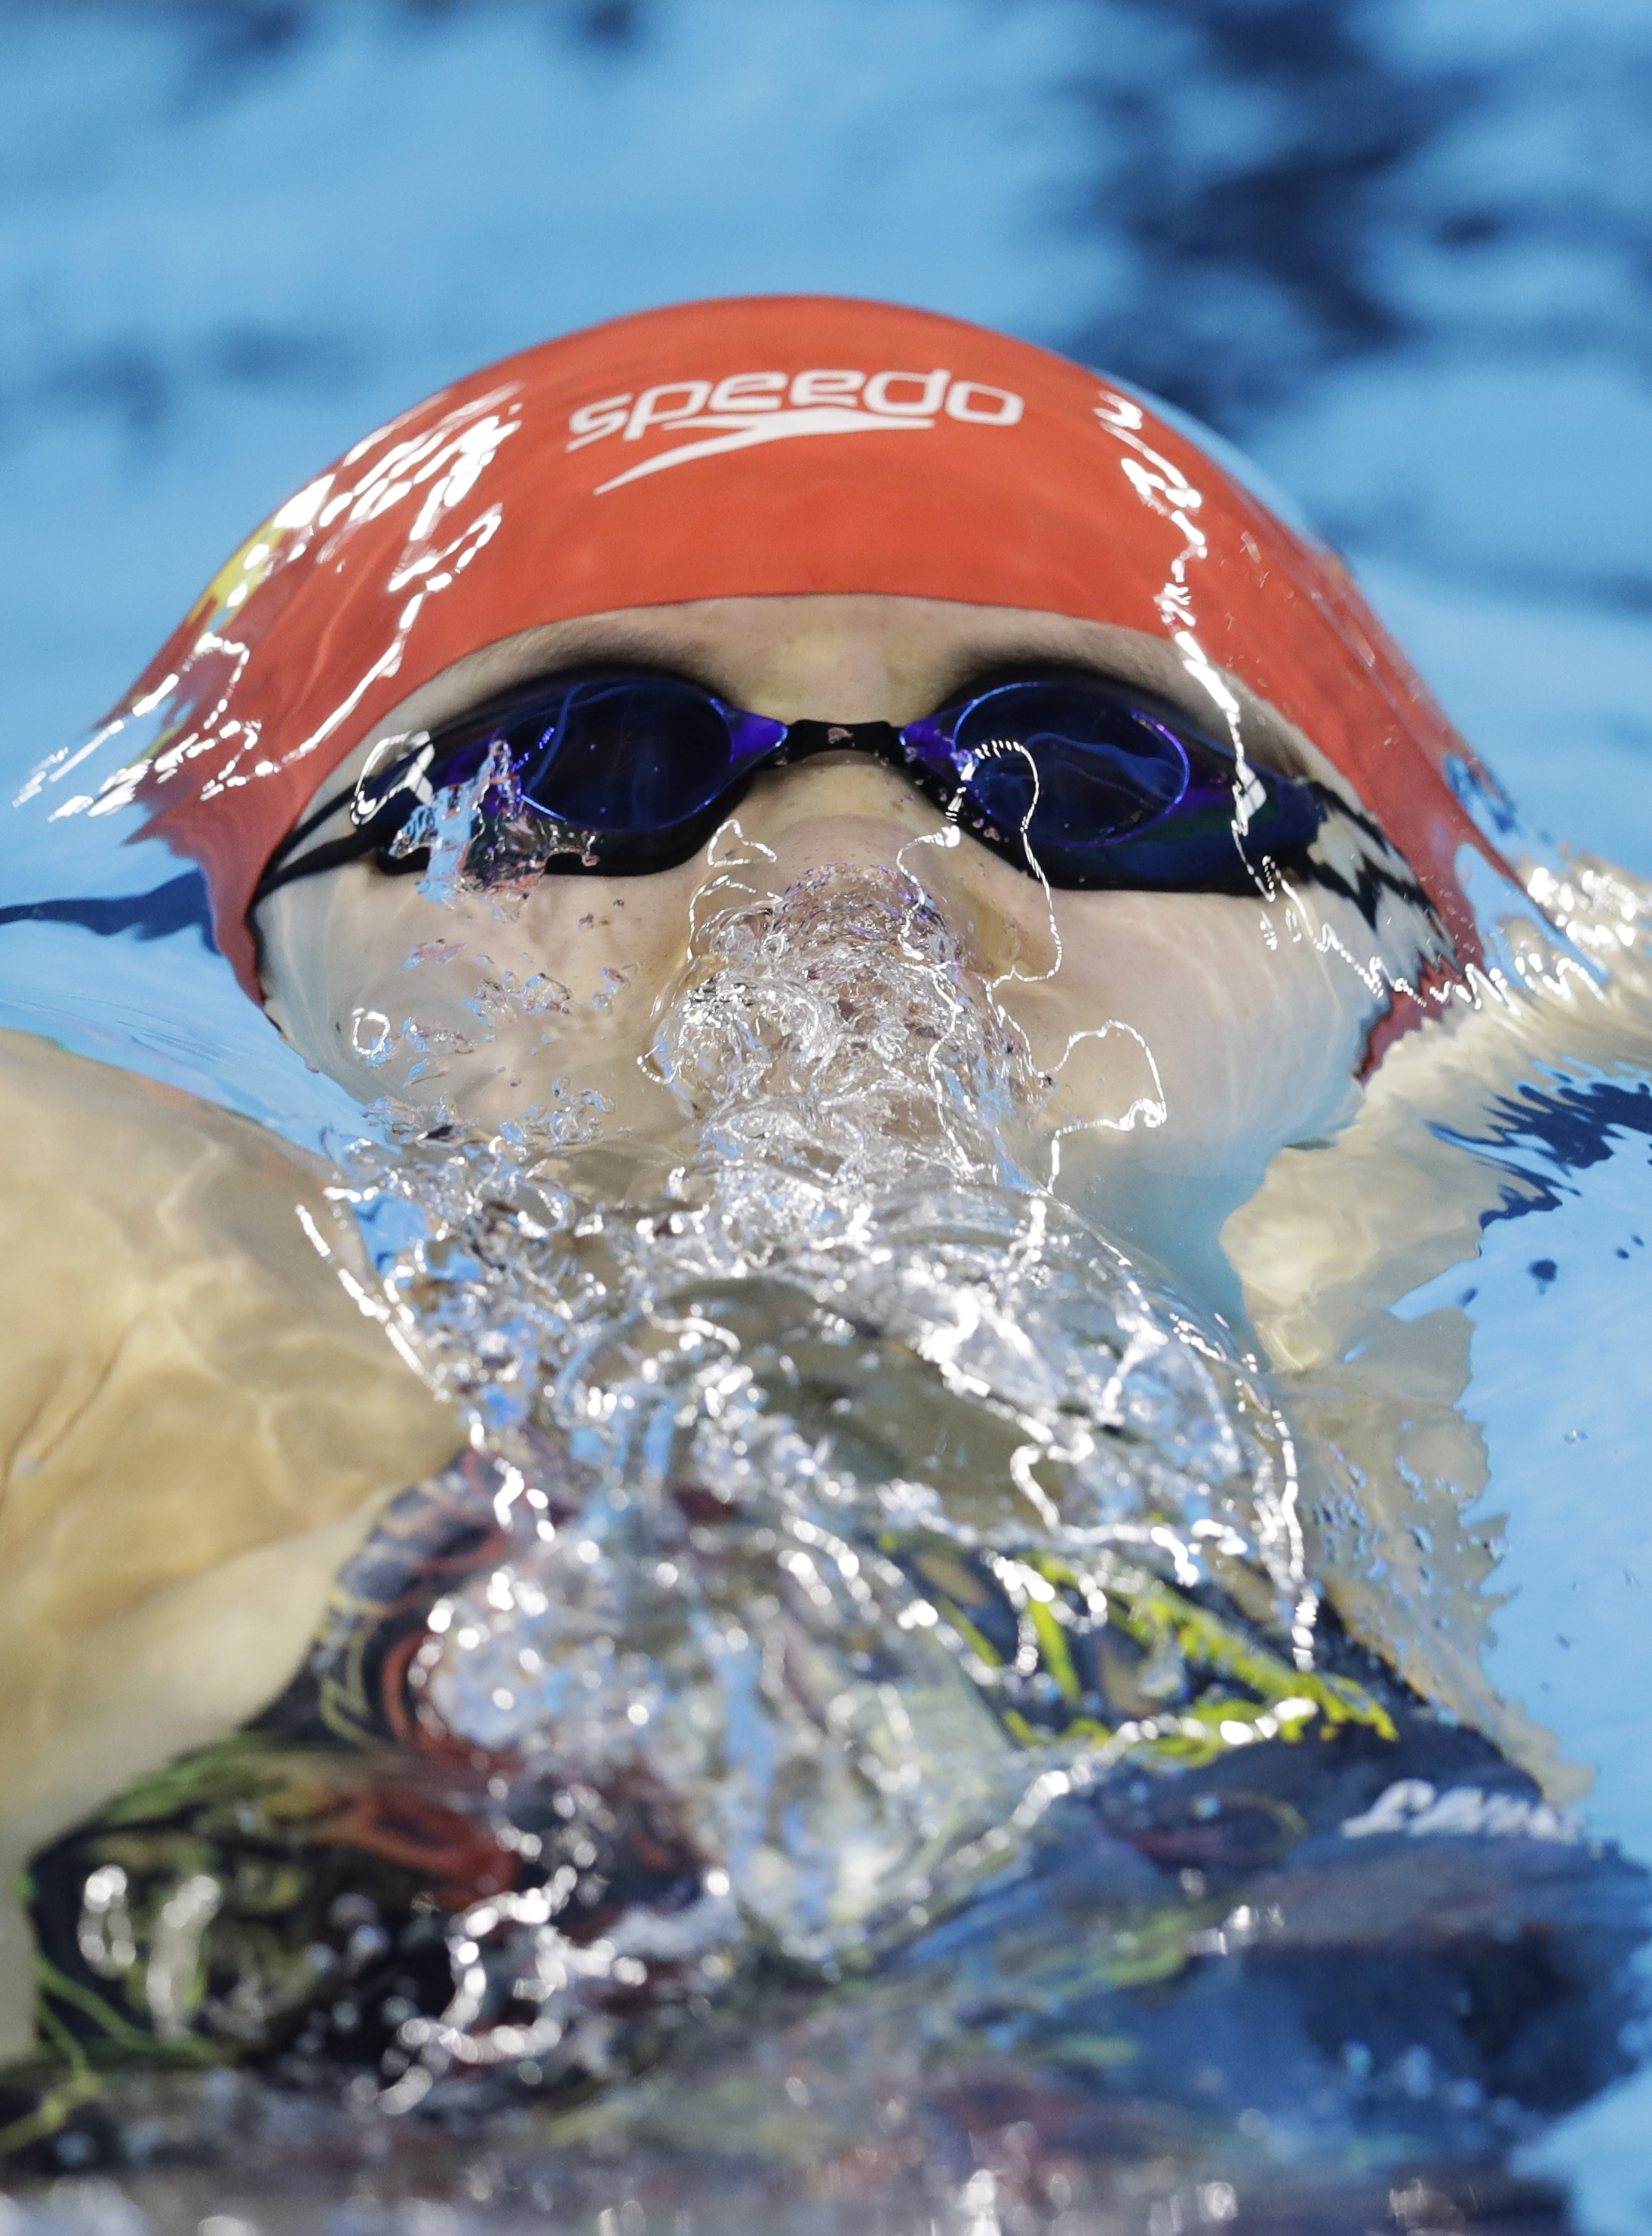 FILE - In this Aug. 7, 2016 file photo, China's Fu Yuanhui competes in the women's 100-meter backstroke swimming heat at the Summer Olympics in Rio de Janeiro, Brazil. The Chinese Olympic swimmer whose popularity soared during the 2016 Rio Games for her a